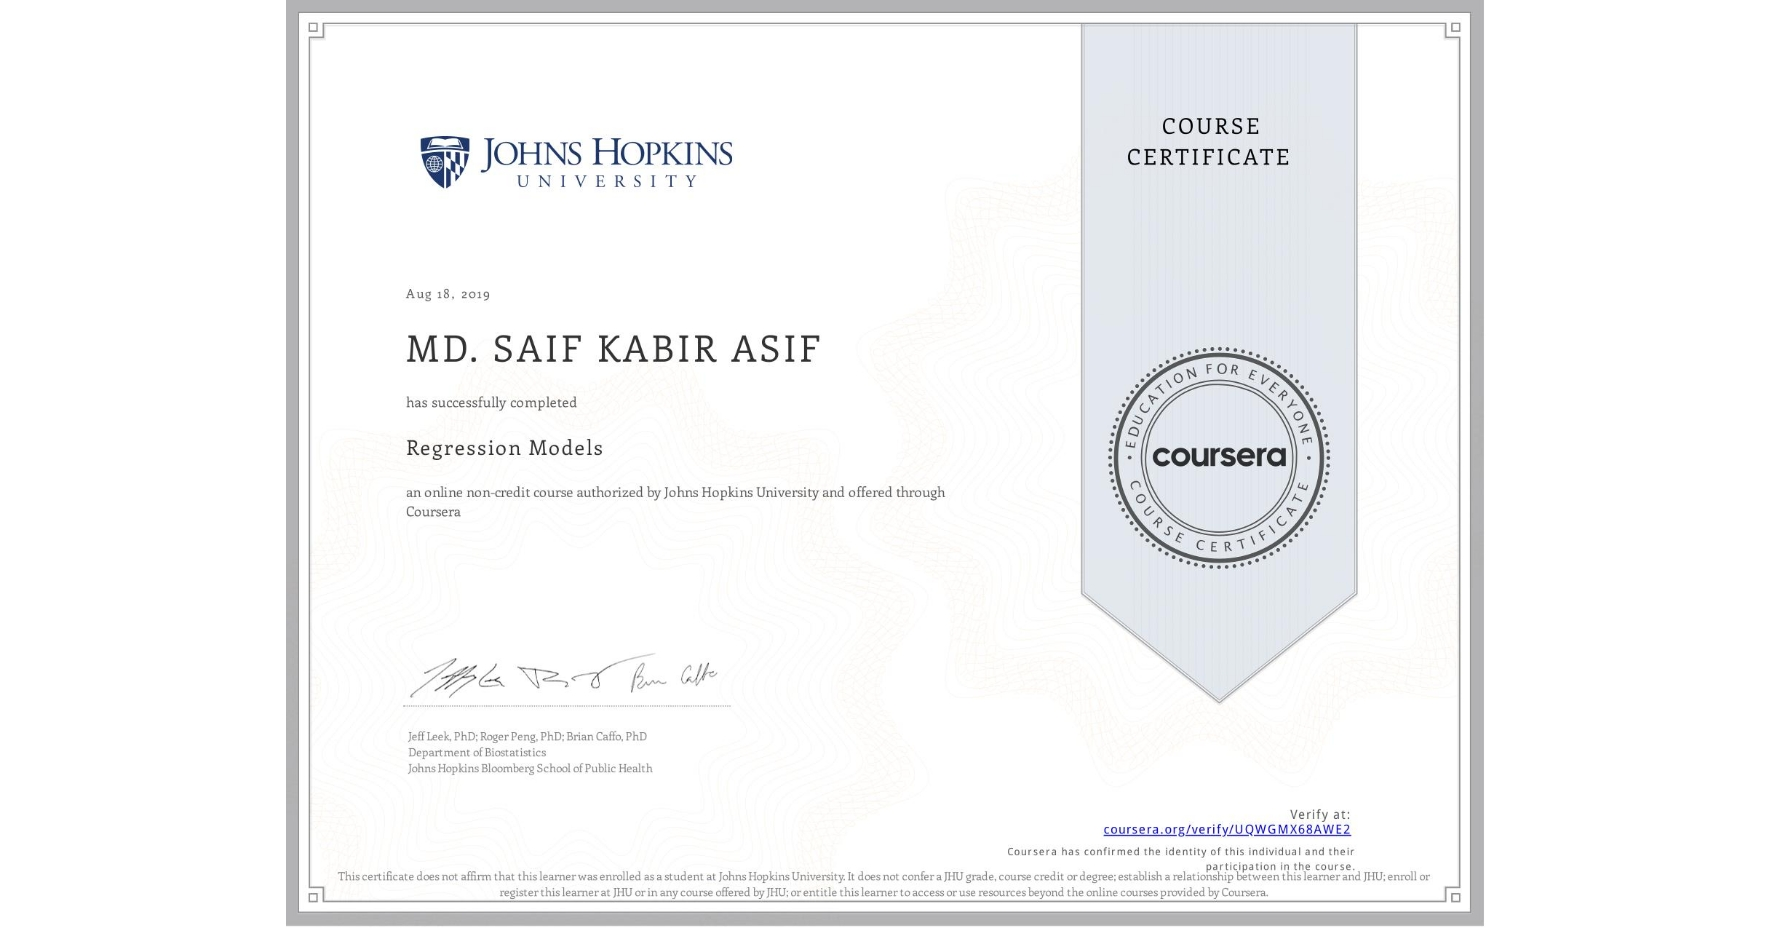 View certificate for Md. Saif Kabir  Asif, Regression Models, an online non-credit course authorized by Johns Hopkins University and offered through Coursera